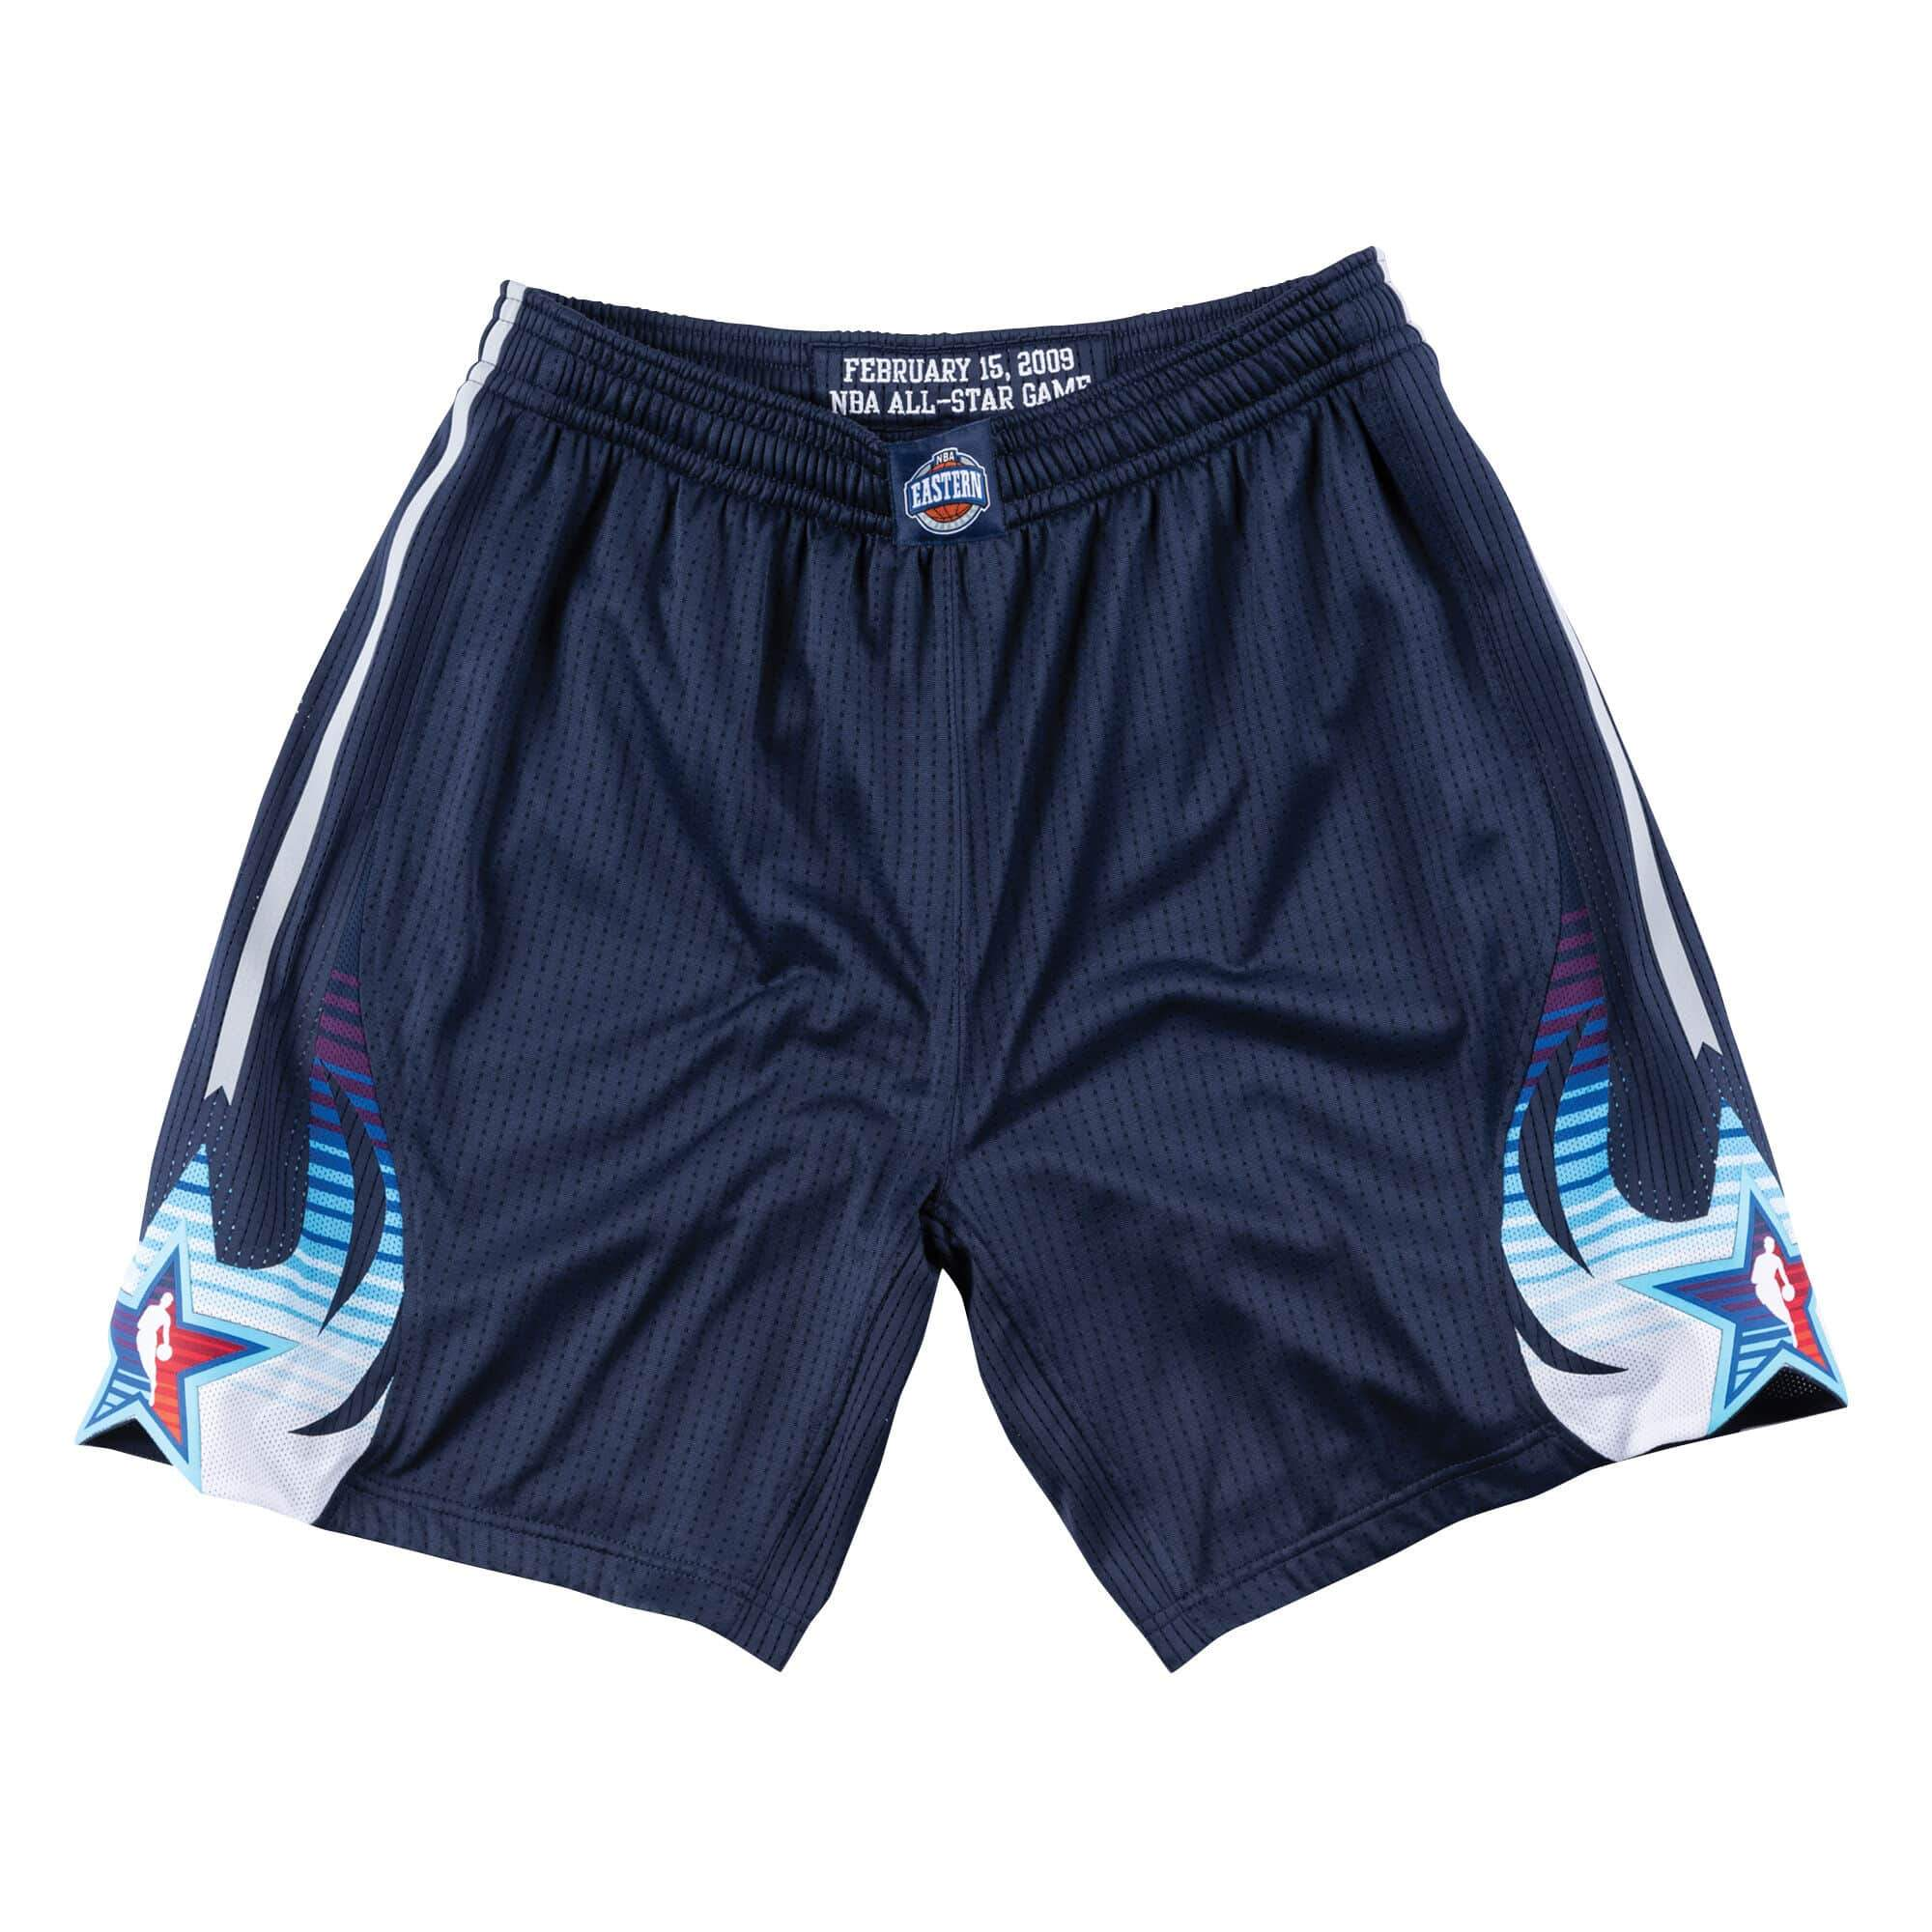 71a32be2a1b2a Mitchell & Ness 2009 NBA All Star Game East Authentic Shorts in Navy